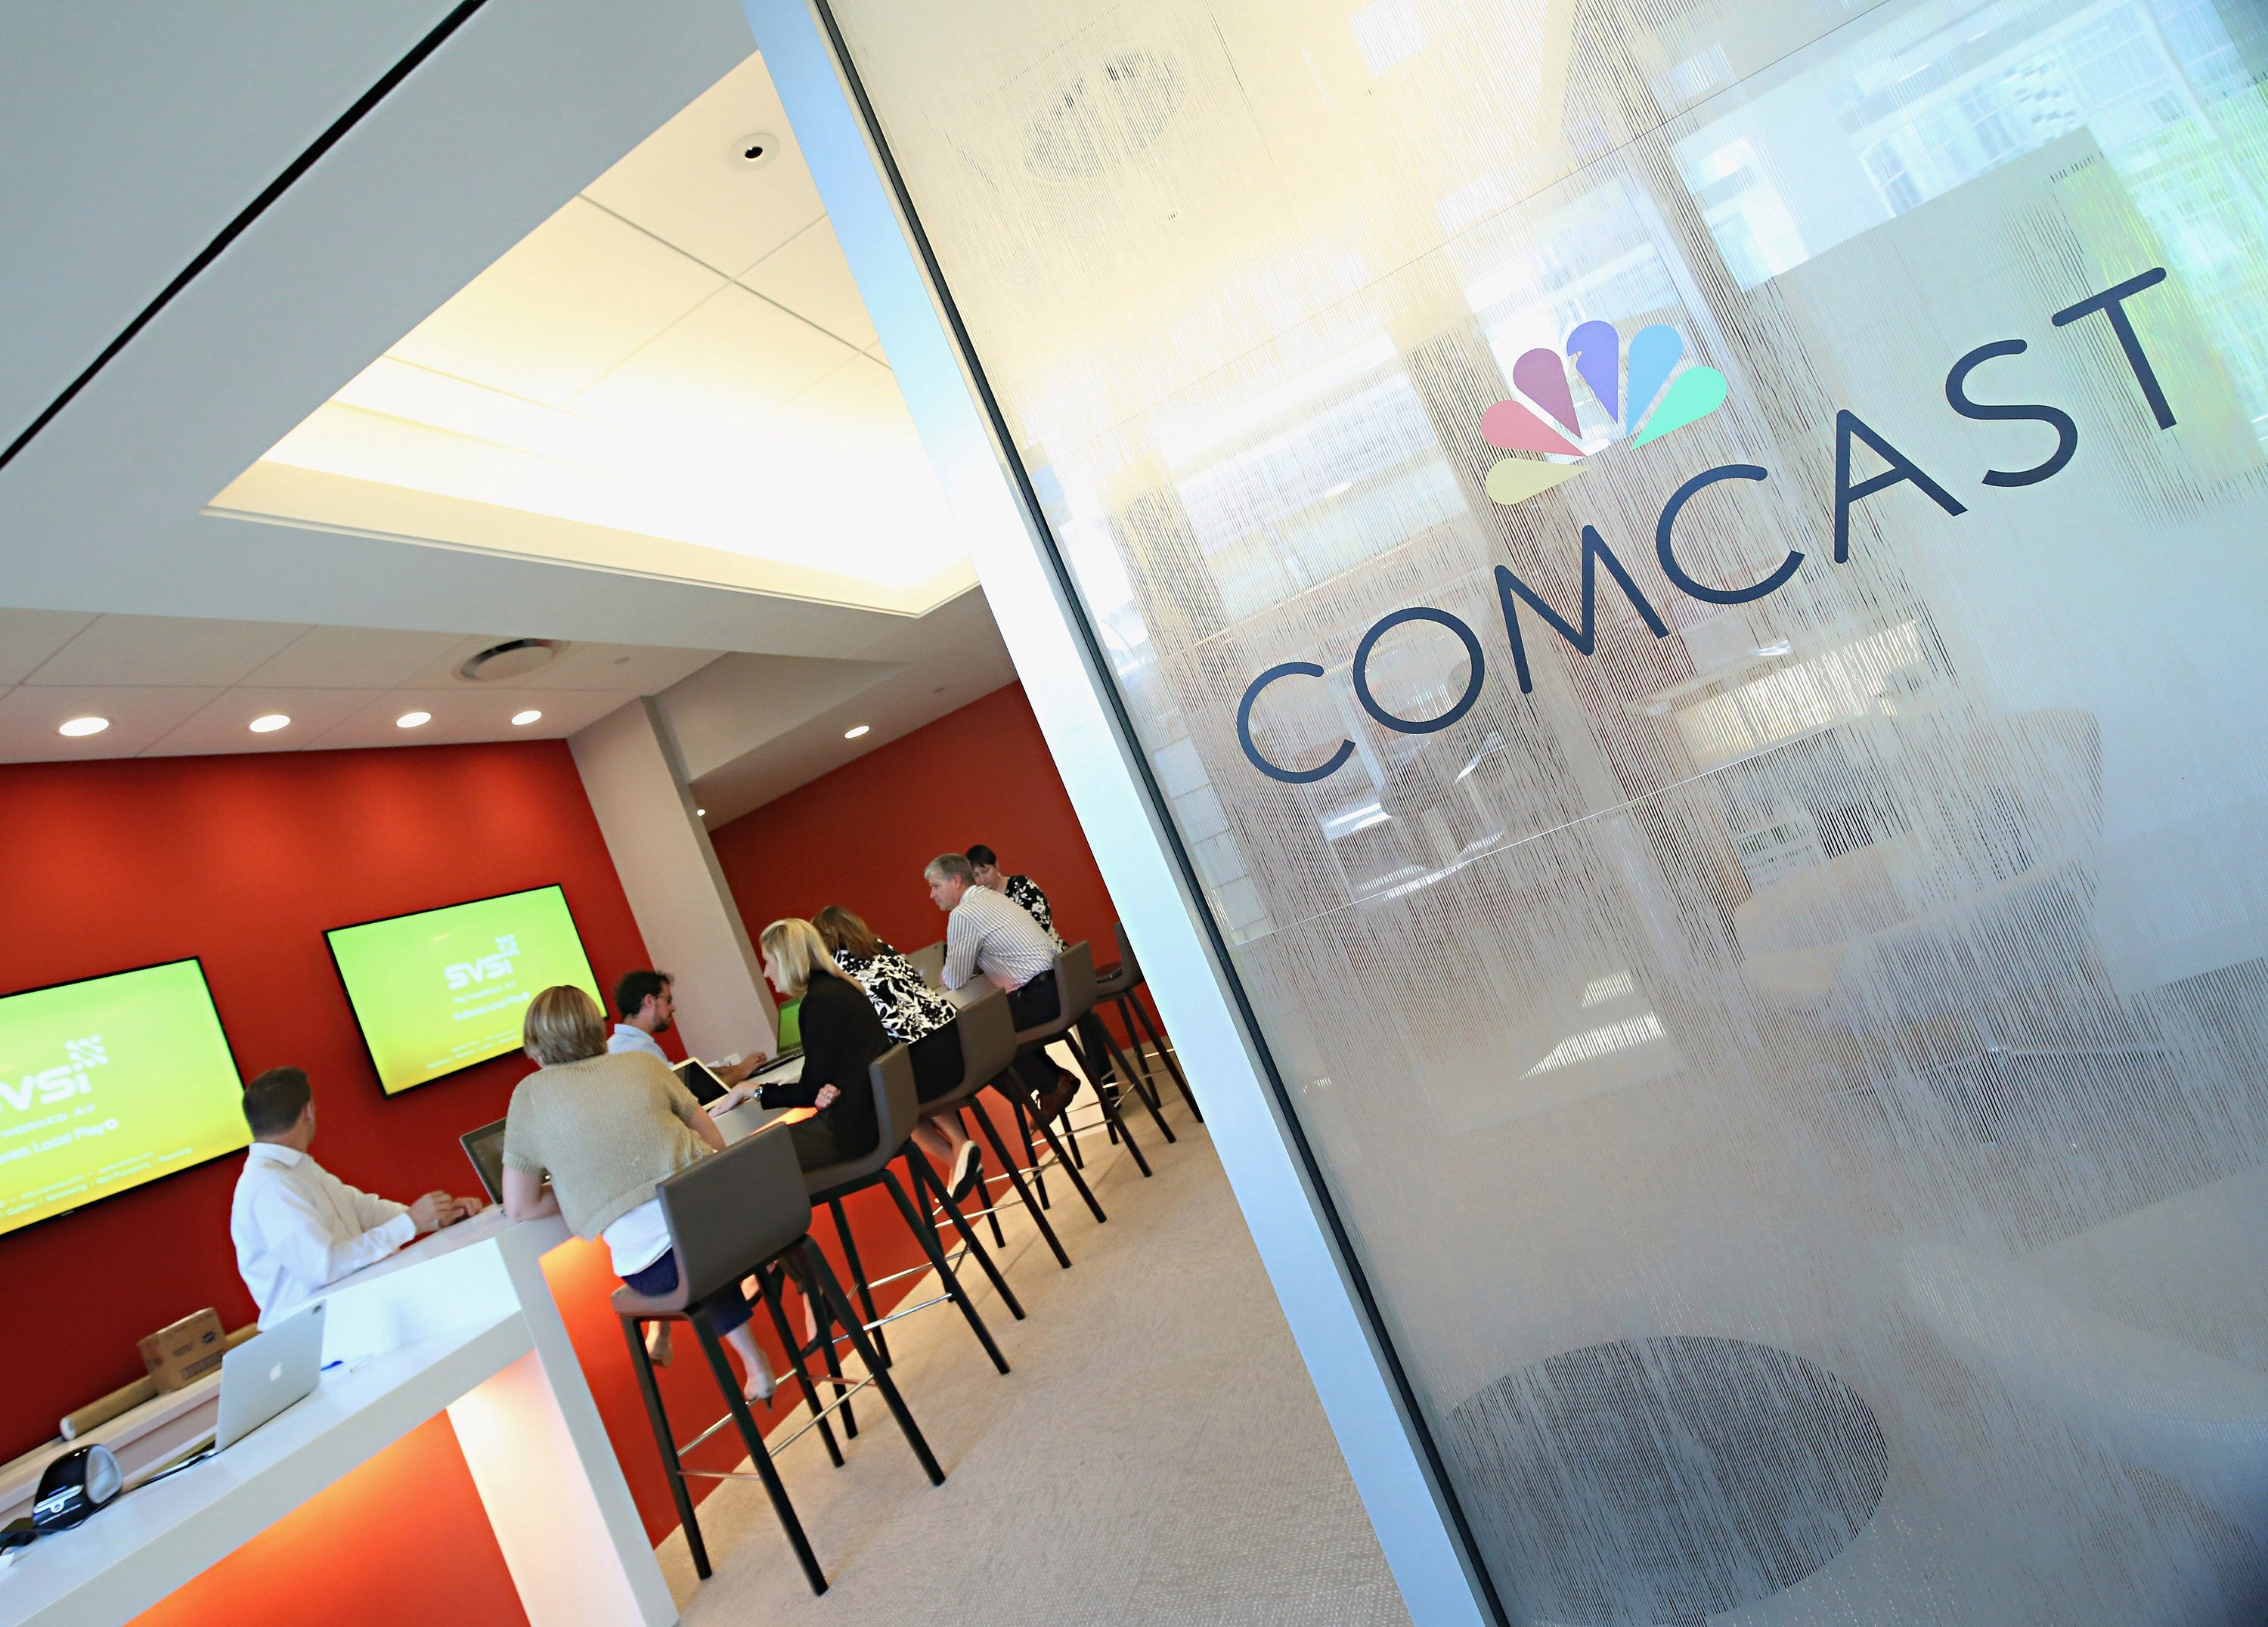 Comcast offers $31 billion to buy Europe's pay-TV giant Sky